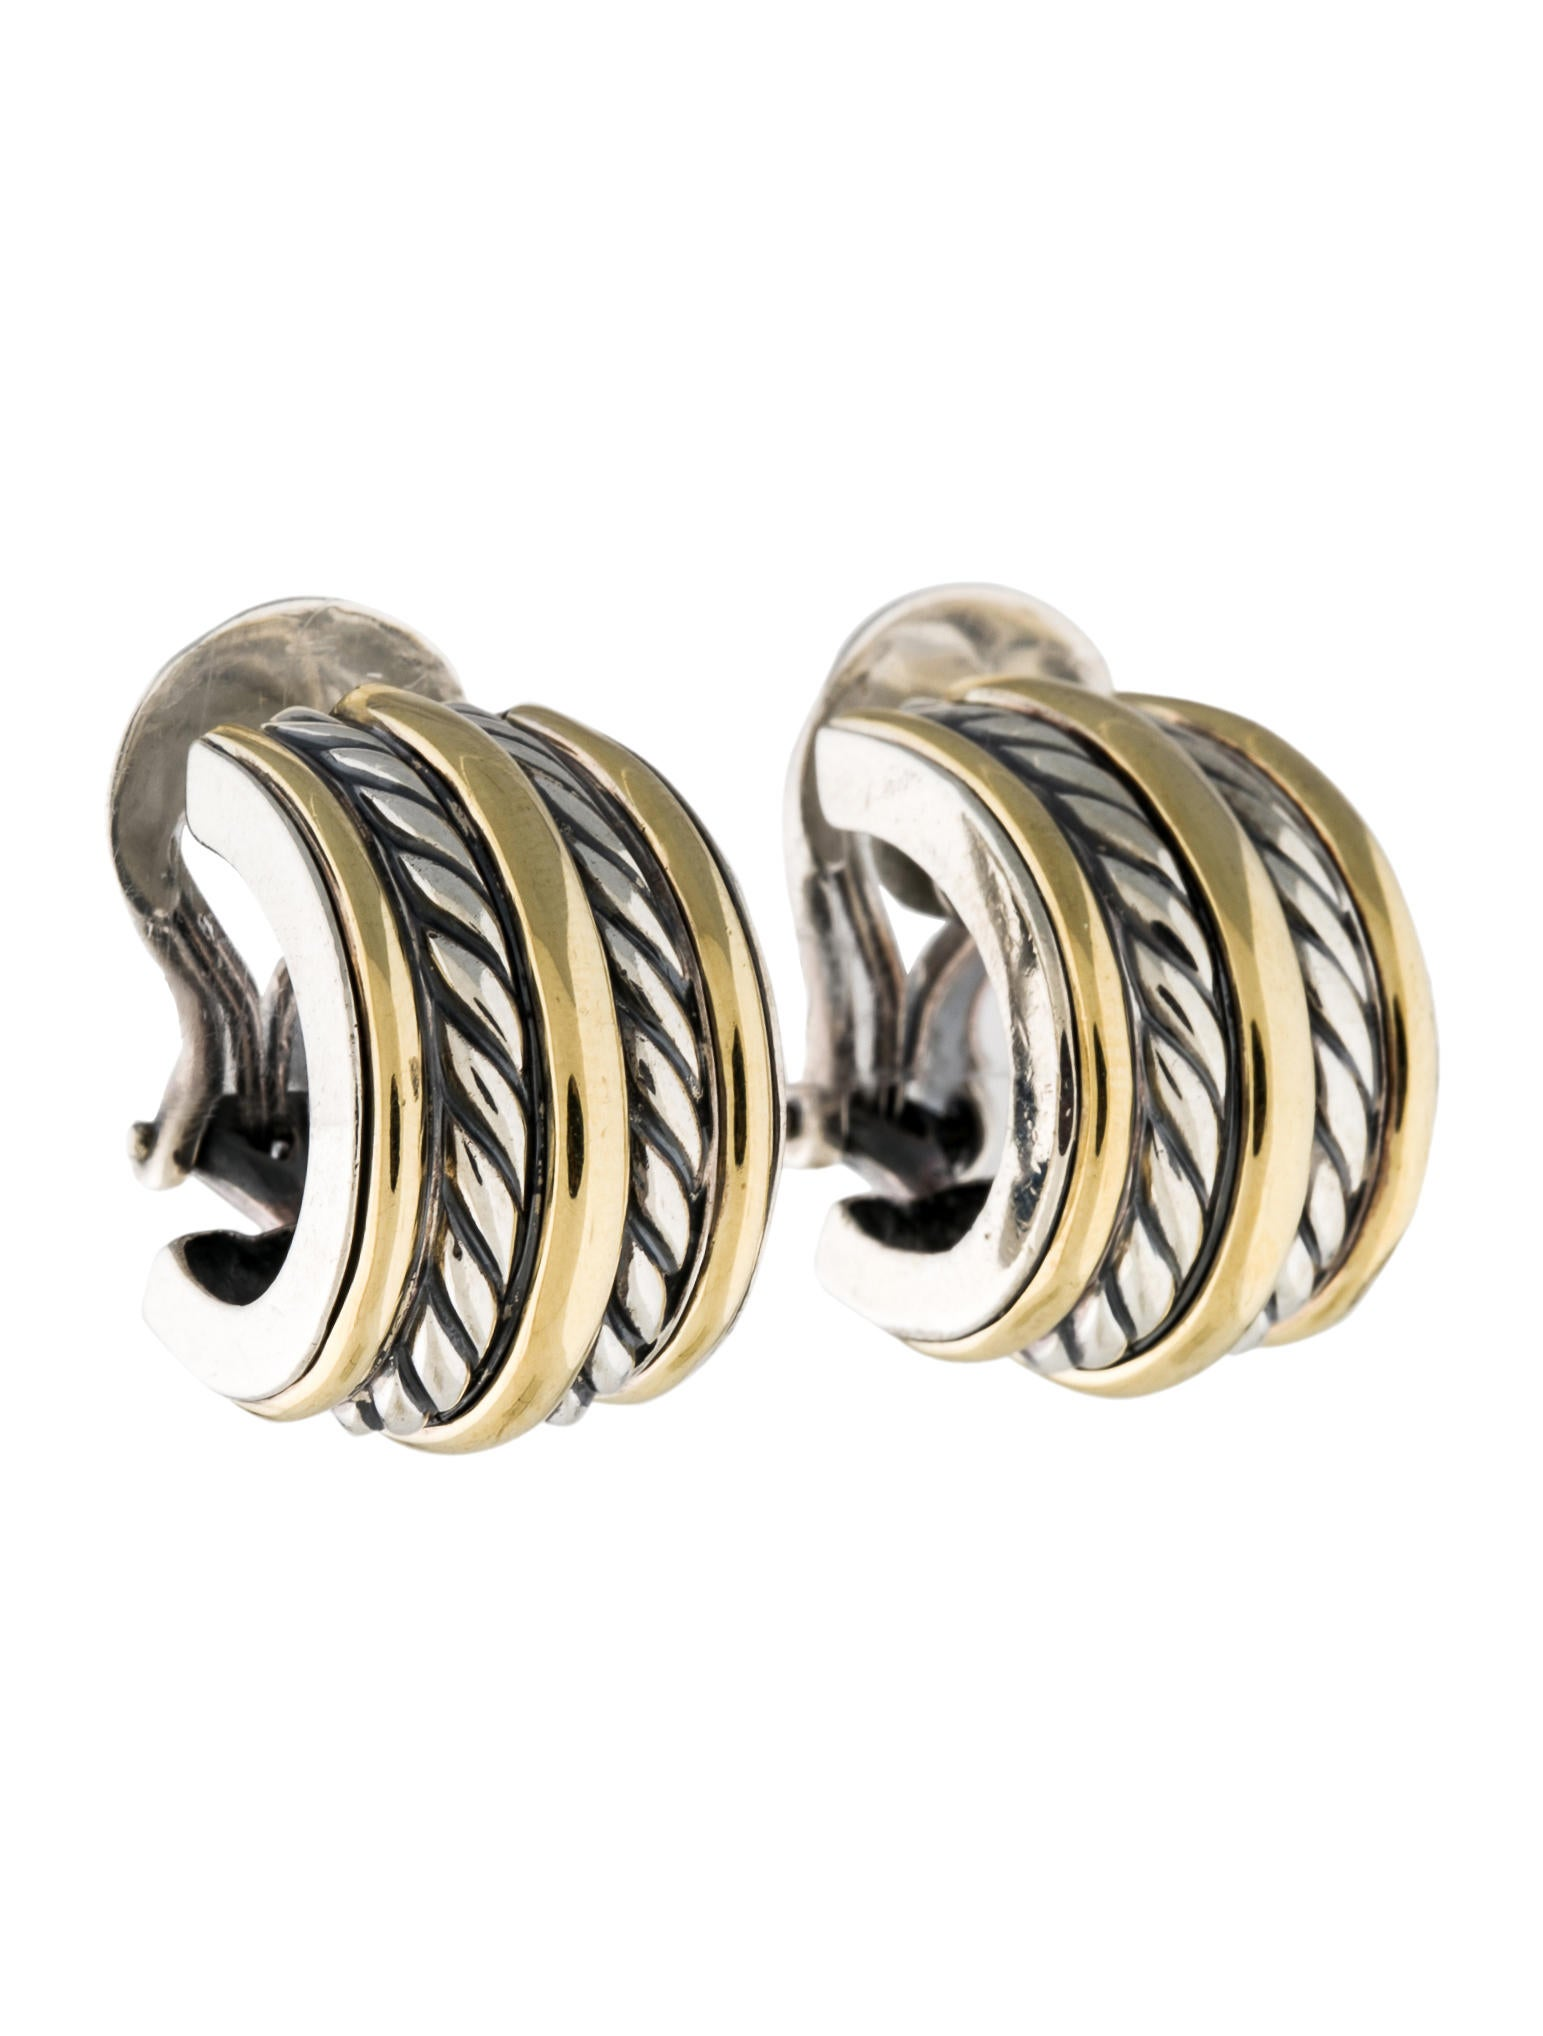 david yurman earrings sale david yurman two tone cable clip on earrings earrings 4079